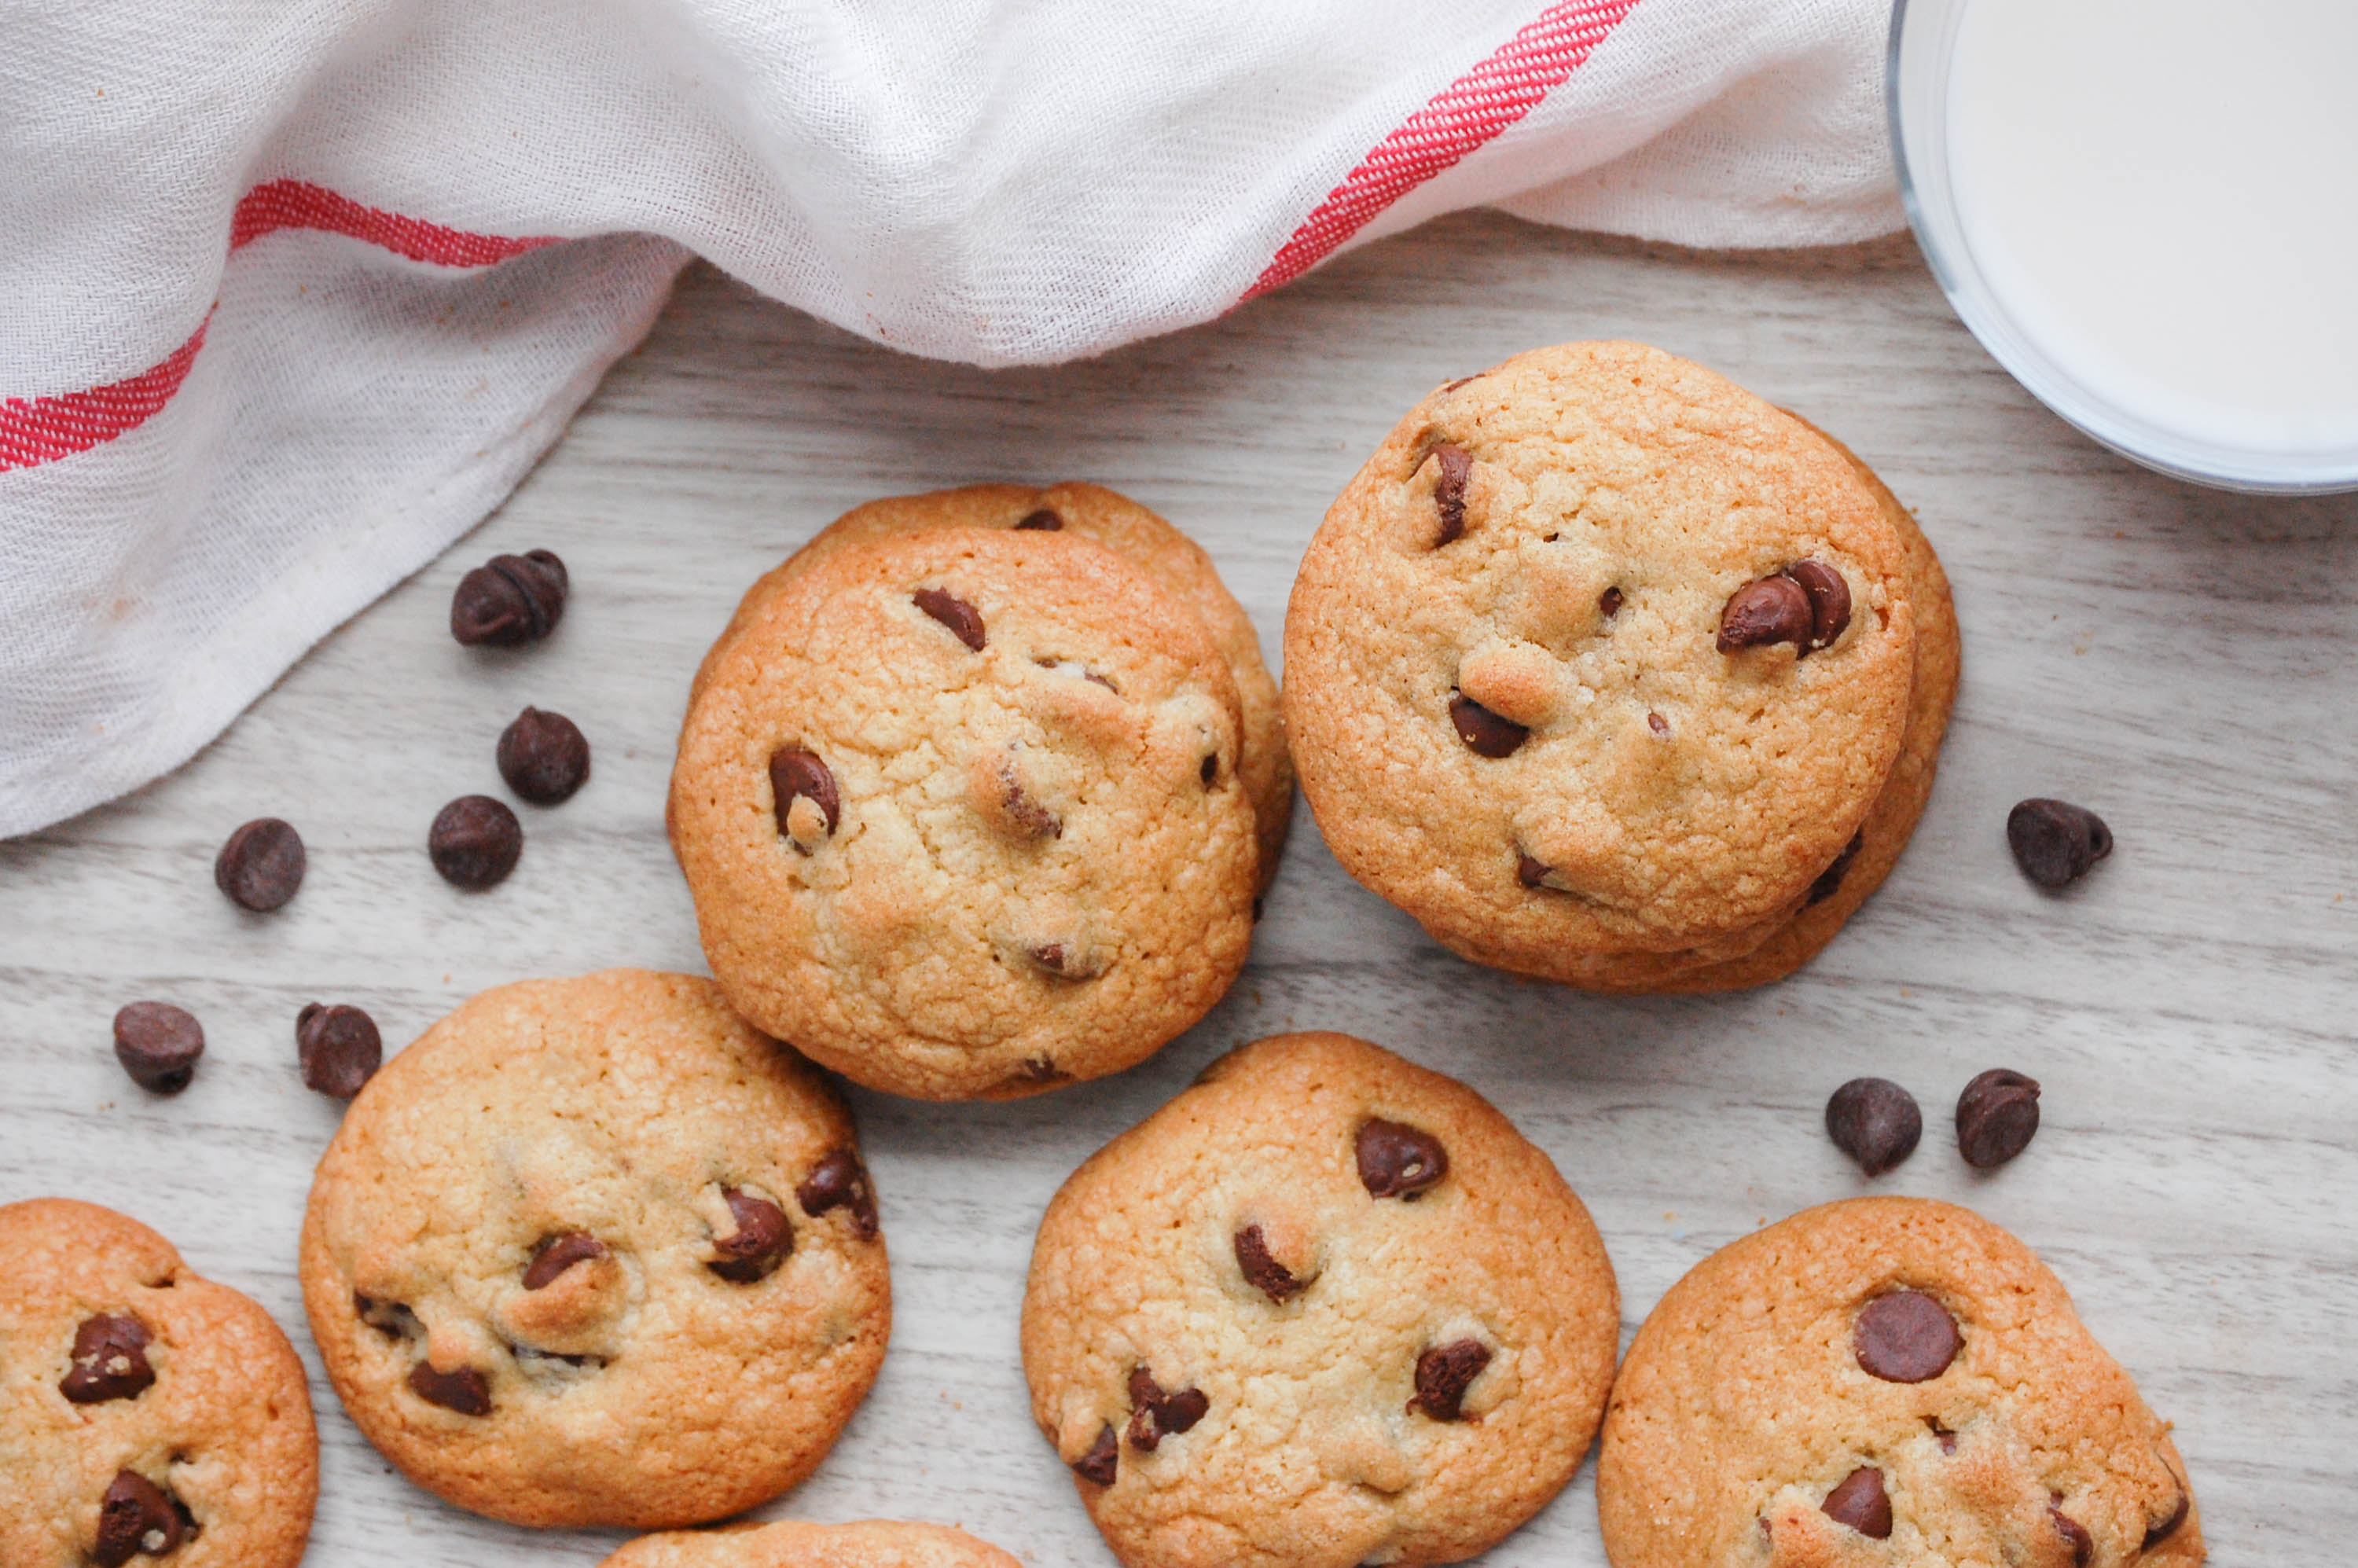 The Best Chocolate Chip Cookies by The District Table